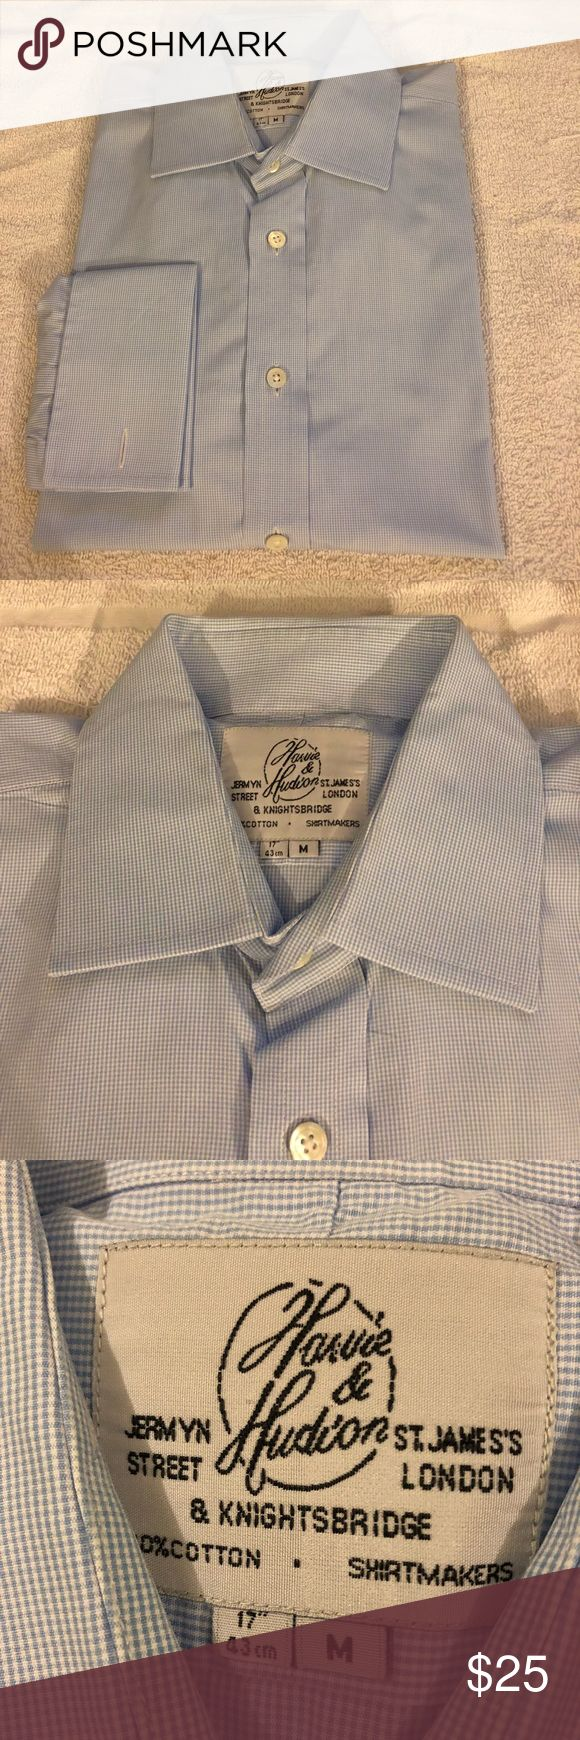 Harvie & Hudson Blue Check French Cuff Shirt 17 Harvie & Hudson Light Blue and White Gingham Check French Cuff Dress Shirt size 17 32/33! Like new!  Please make reasonable offers and bundle! Ask questions :) Harvie & Hudson Shirts Dress Shirts